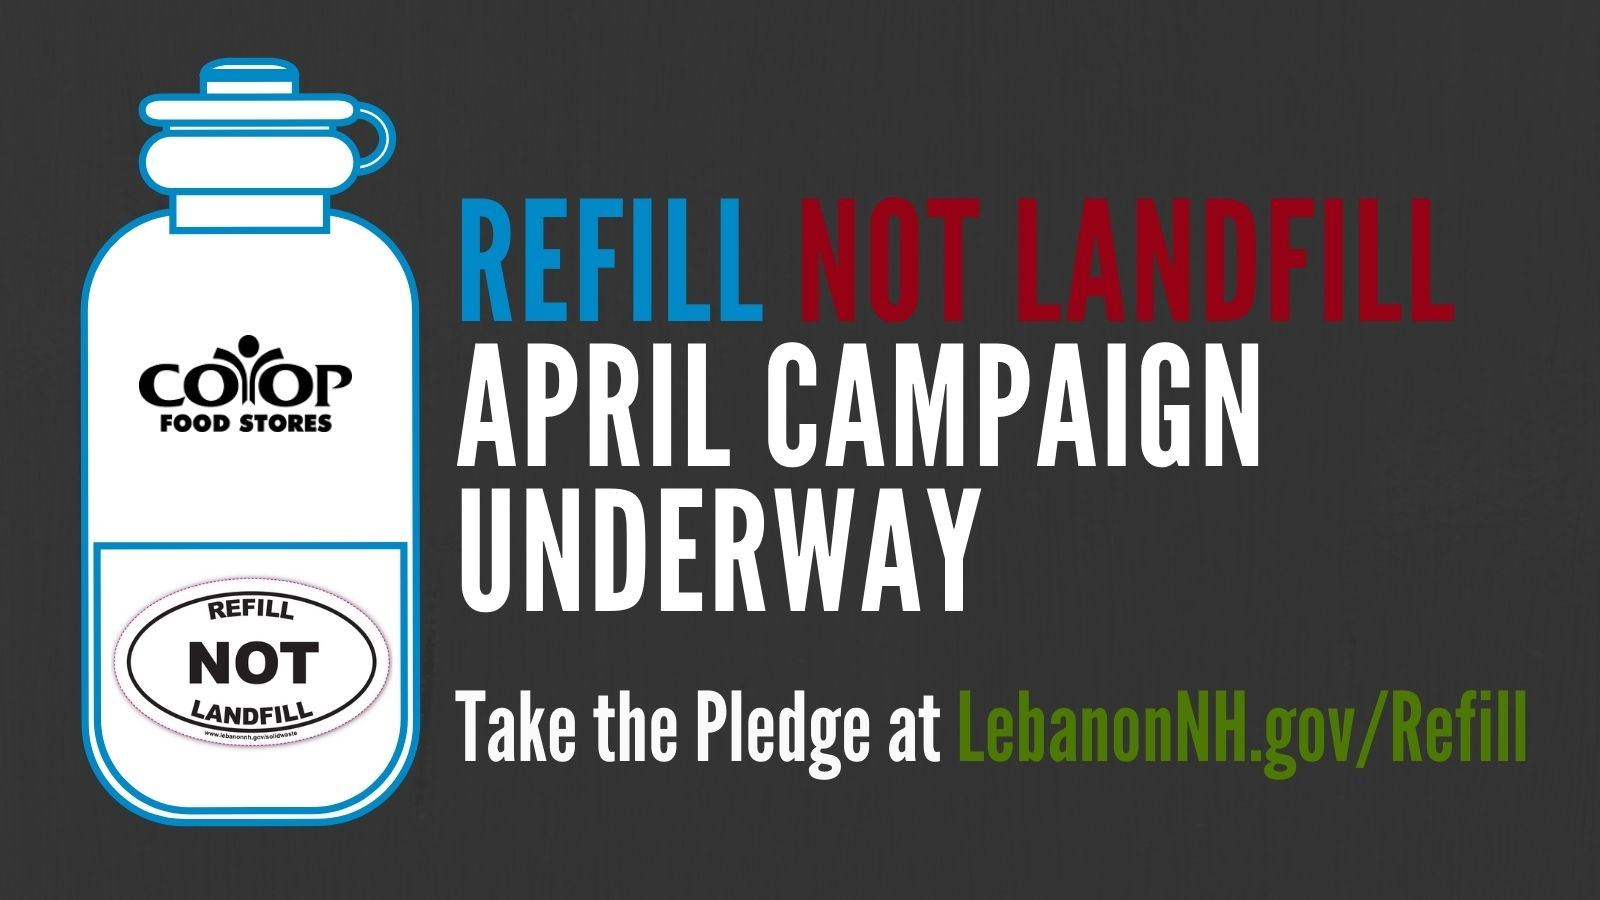 Refill Not Landfill Campaign underway. Take the pledge today!